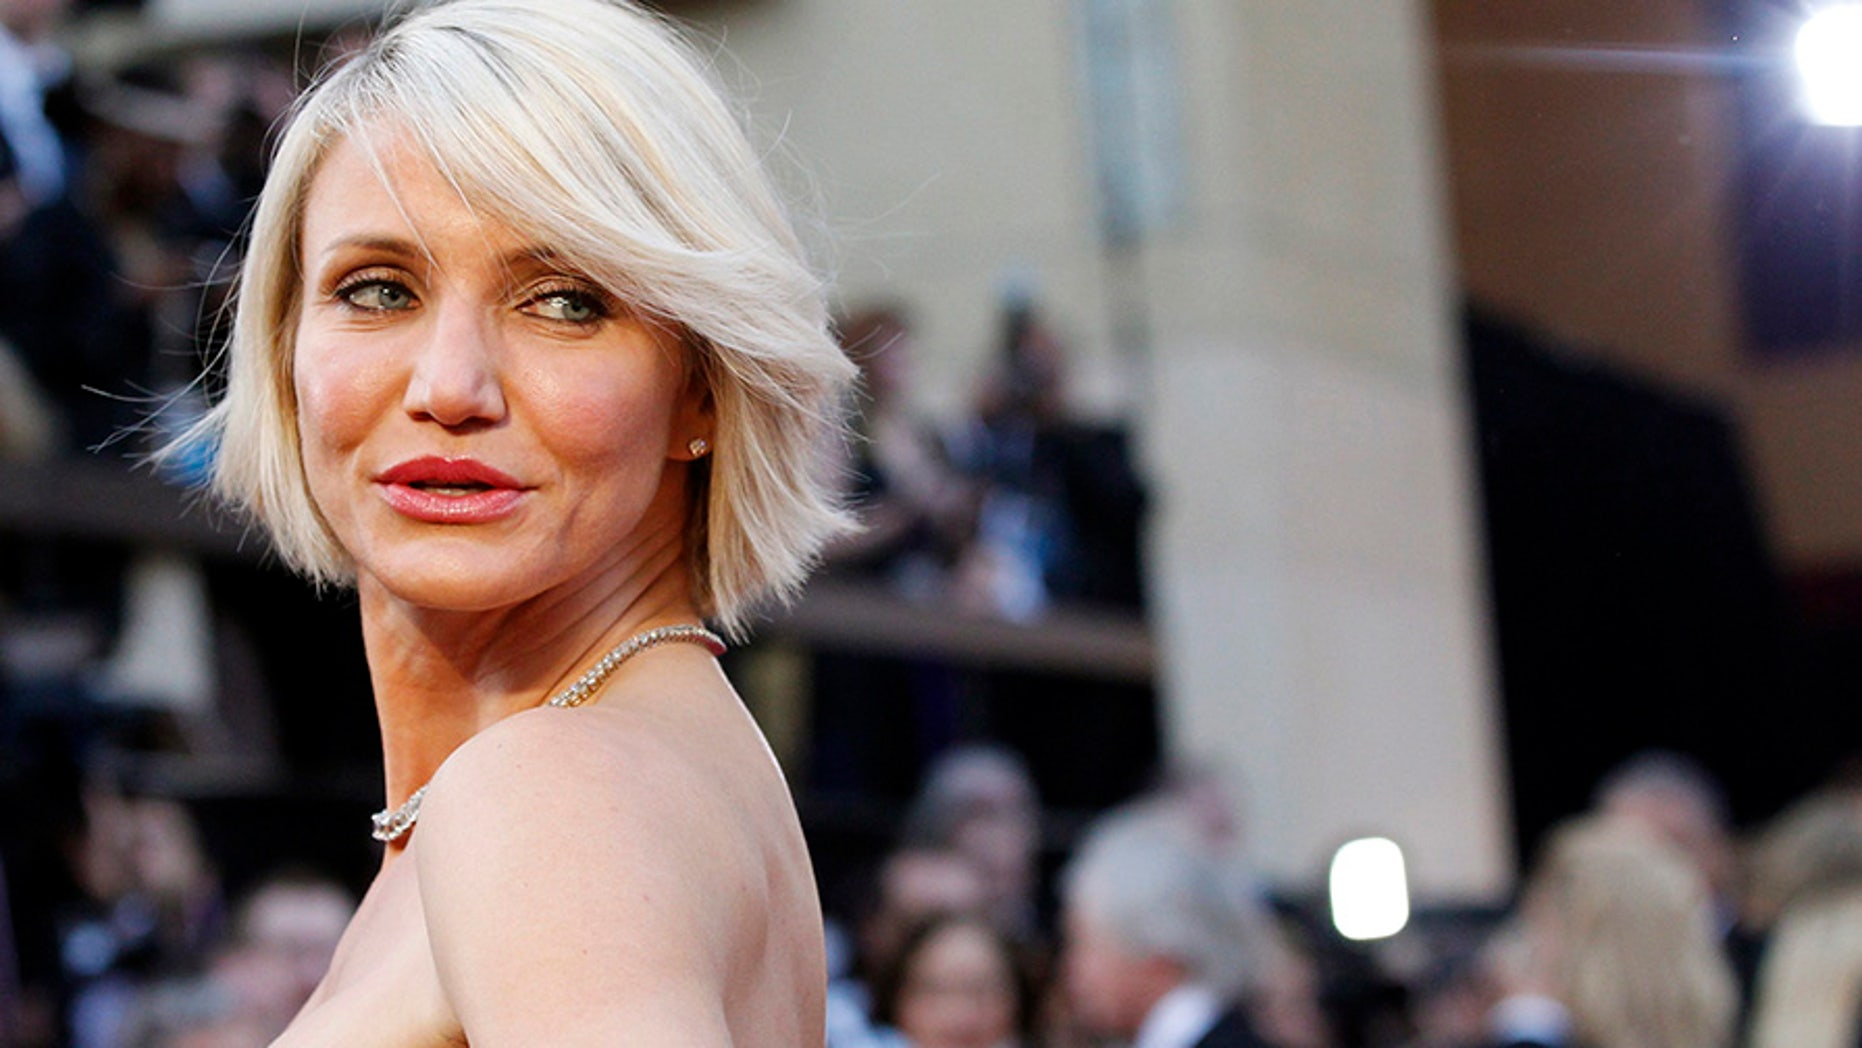 Hollywood actress Cameron Diaz is one of many stars campaigning against the shocking trade.